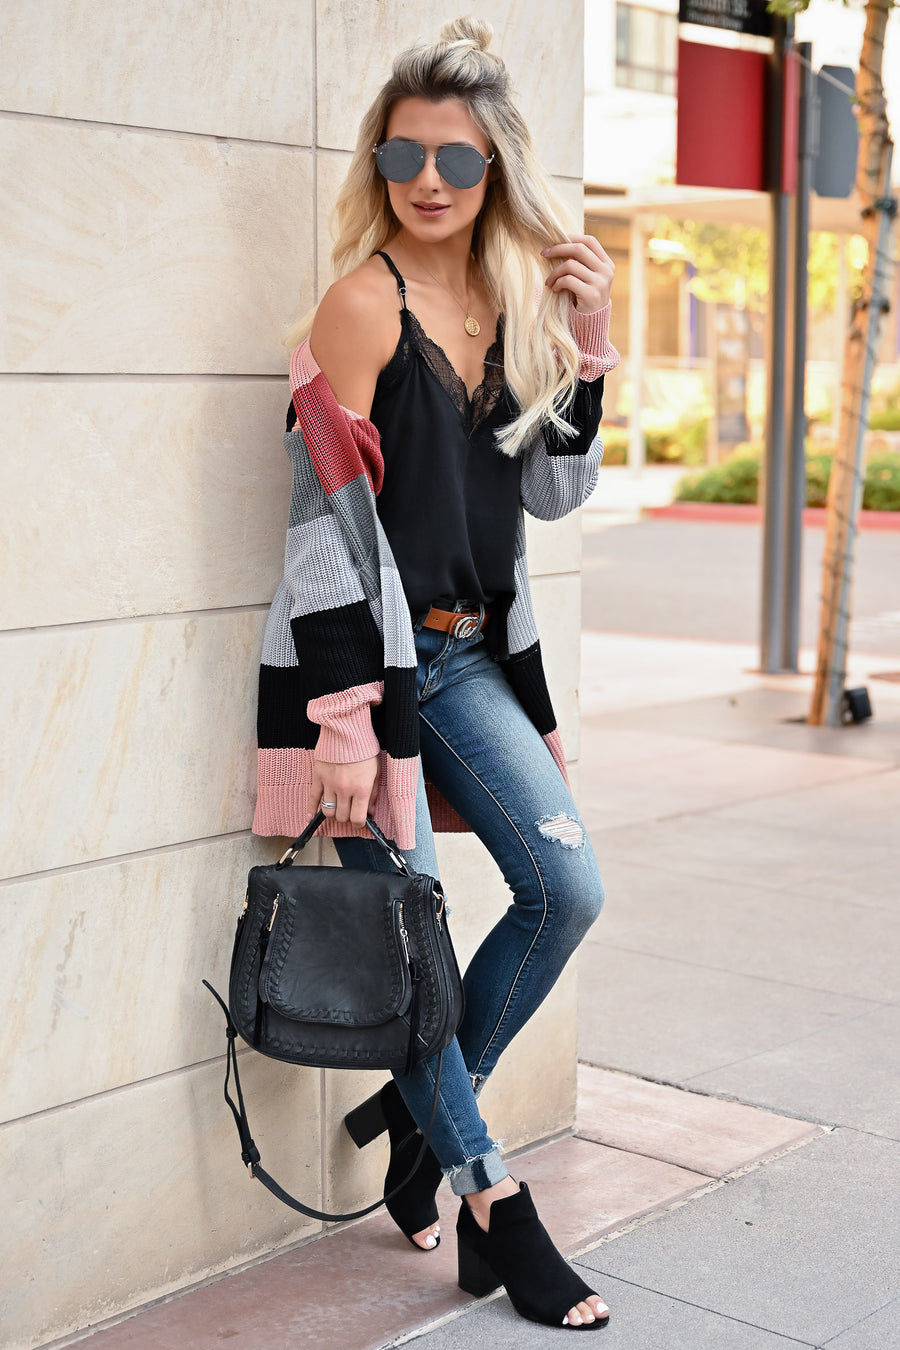 CBRAND Power Play Color Block Cardigan - Multi womens trendy color block cardigan open front closet candy front